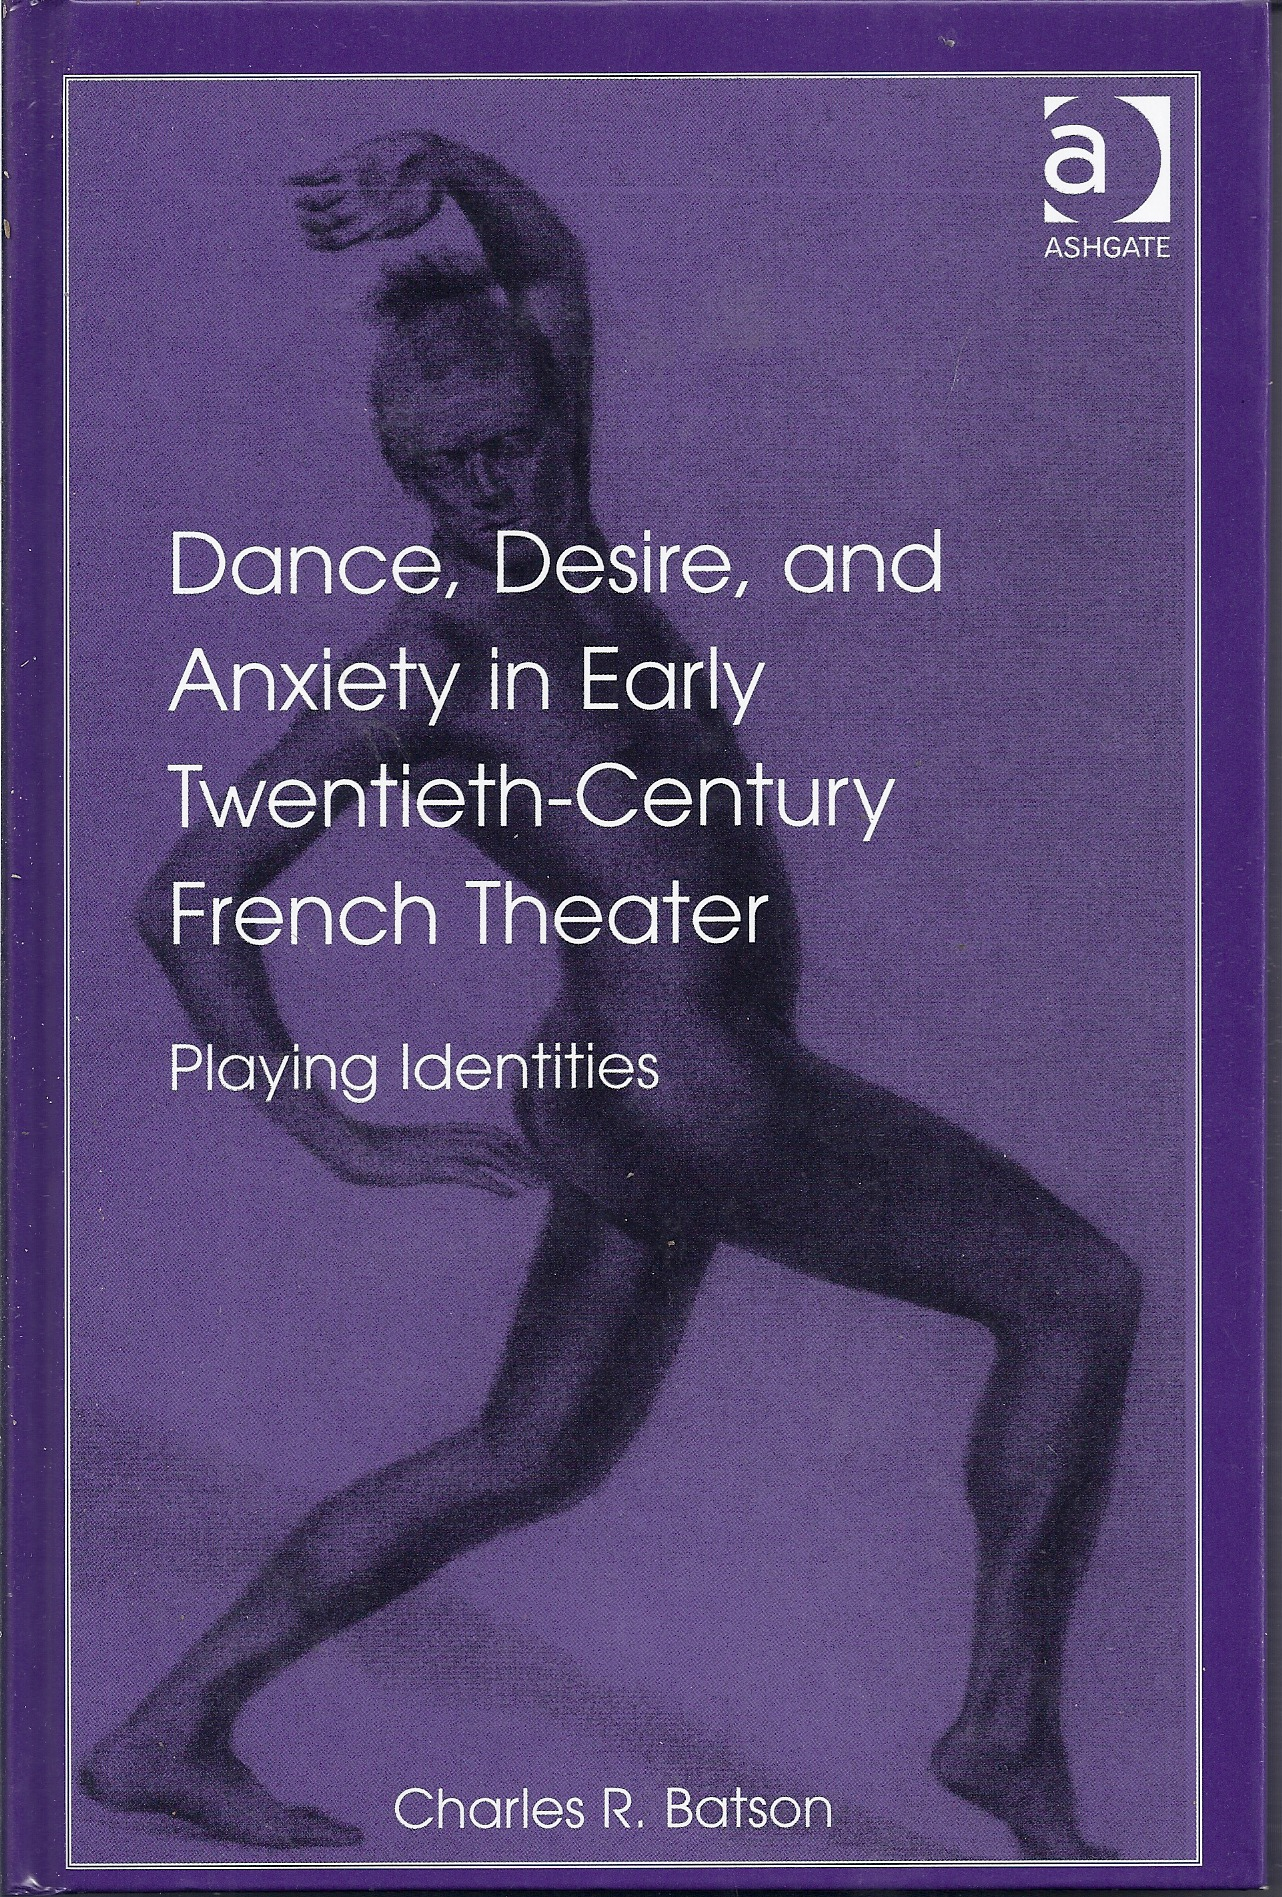 Image for Dance, Desire, and Anxiety in Early Twentieth-Century French Theater Playing Identities